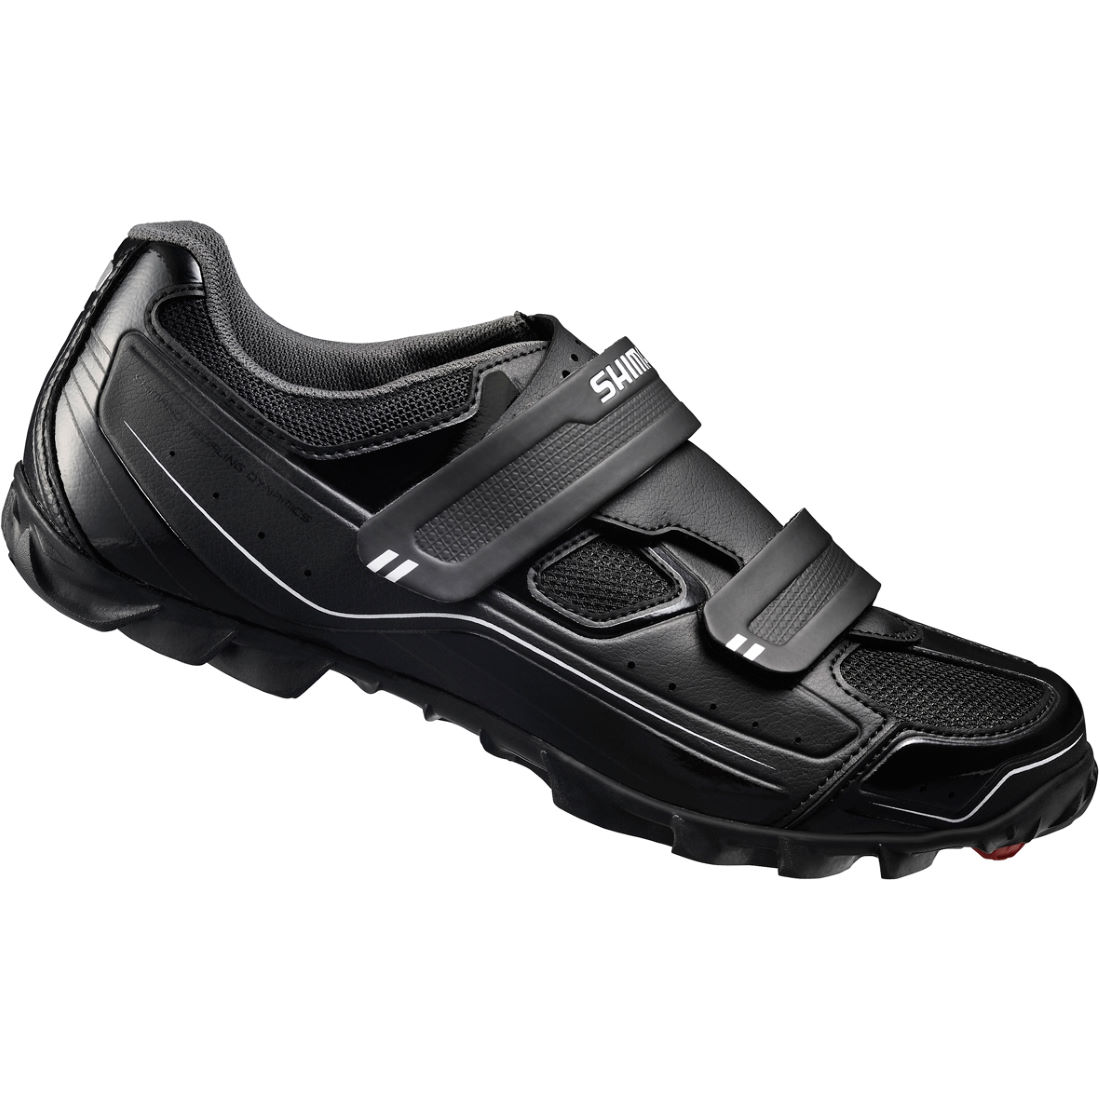 Cycle Touring Bike Shoes Size